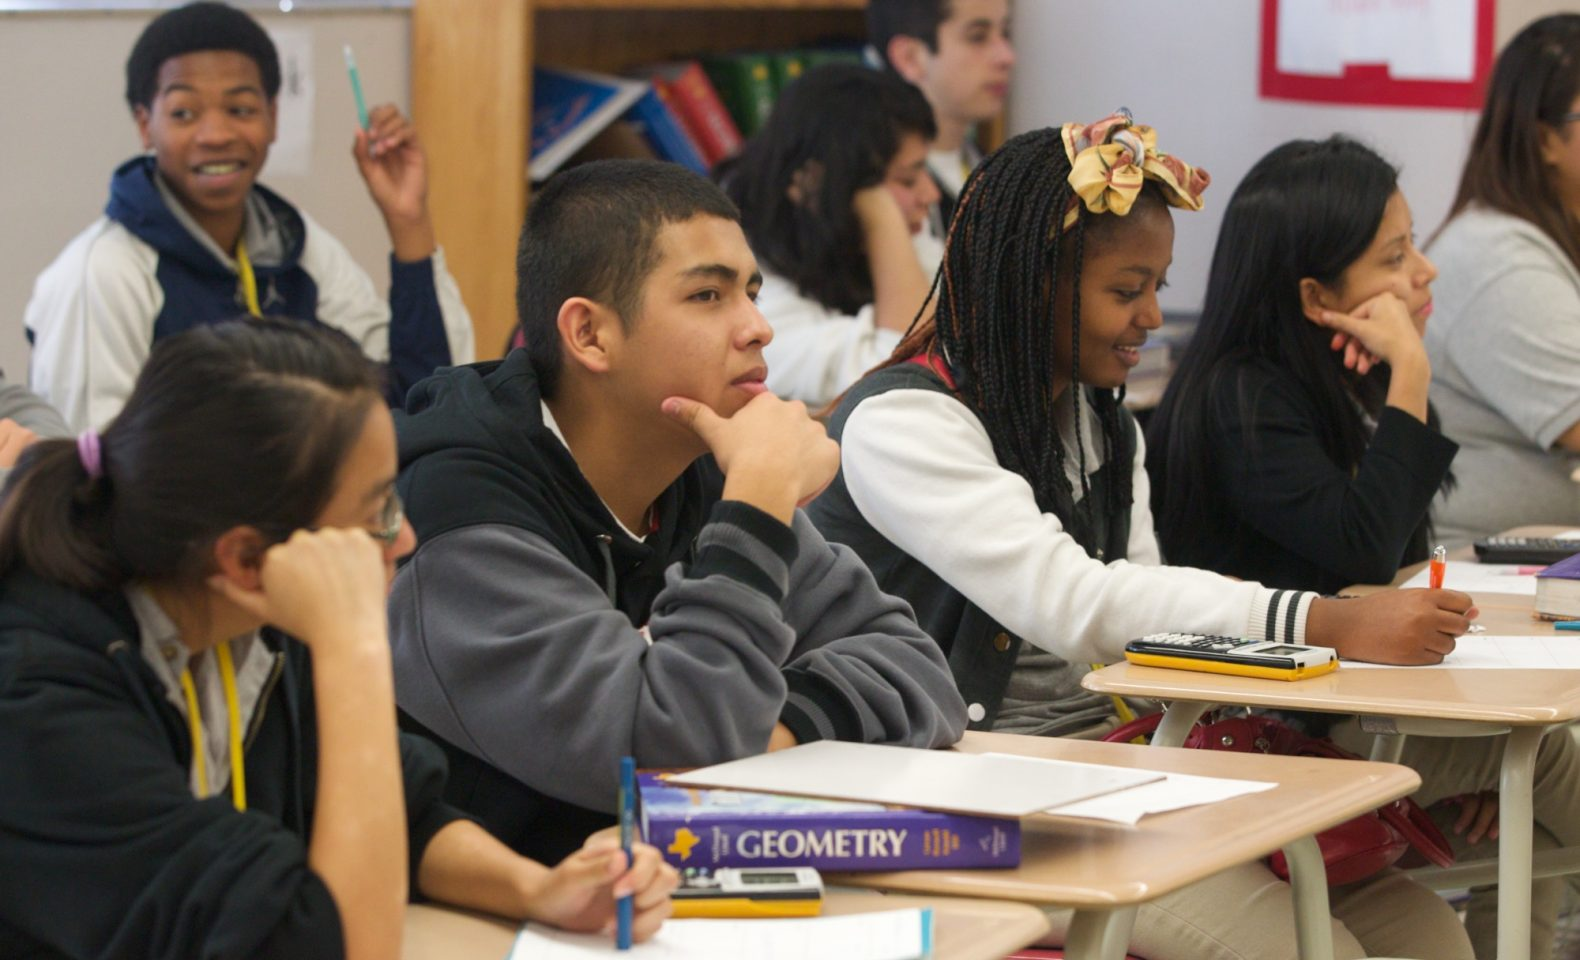 meeting the diverse needs of all students How to meet culturally-diverse students where they are prepare to teach the culturally diverse students you may have in your classroom using these guidelines and strategies for teaching your lessons to meet the needs of these students.